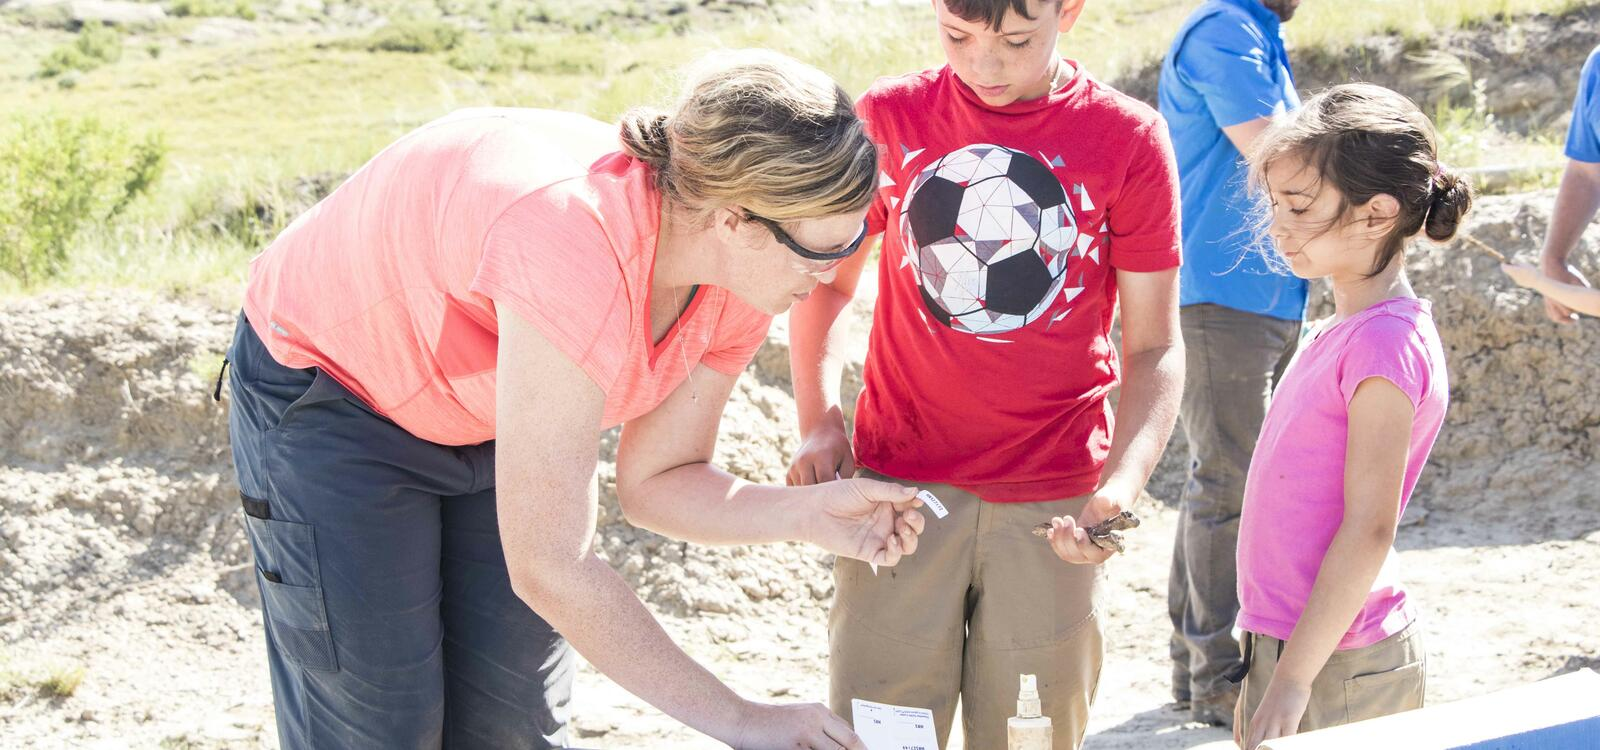 A woman bends down and grabs a label and hands it totwo kids that are out finding a dinosaur bones at the dig site